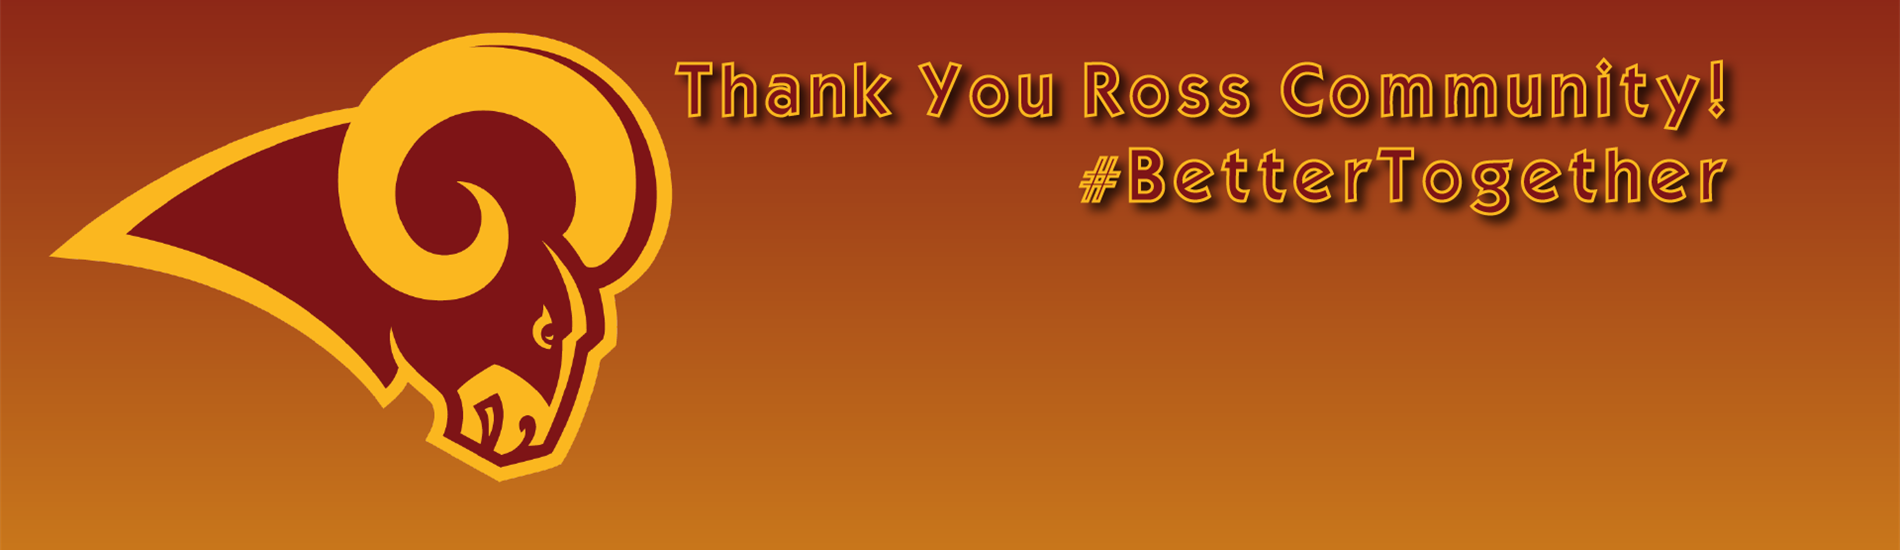 "Maroon and Gold Ram Head with text that says ""Thank You Ross Community! #BetterTogether"""